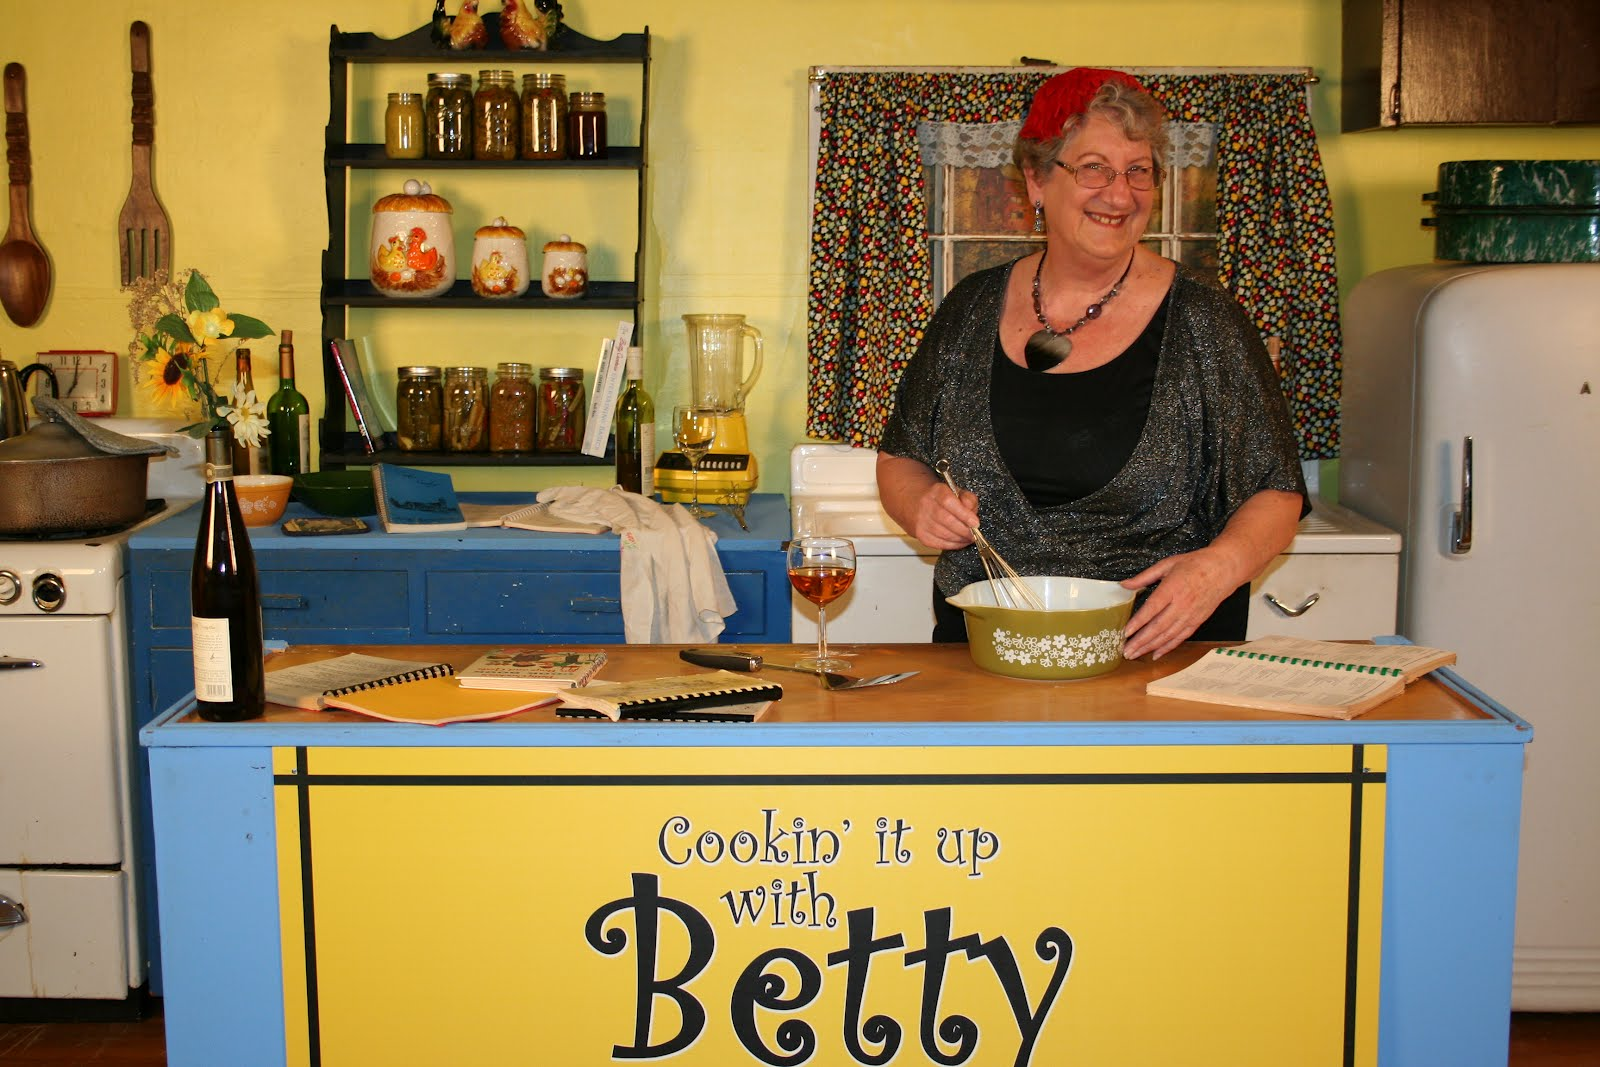 """Cookin it up with Betty"" Moves to the Second Floor of KLUK TV Studios!"